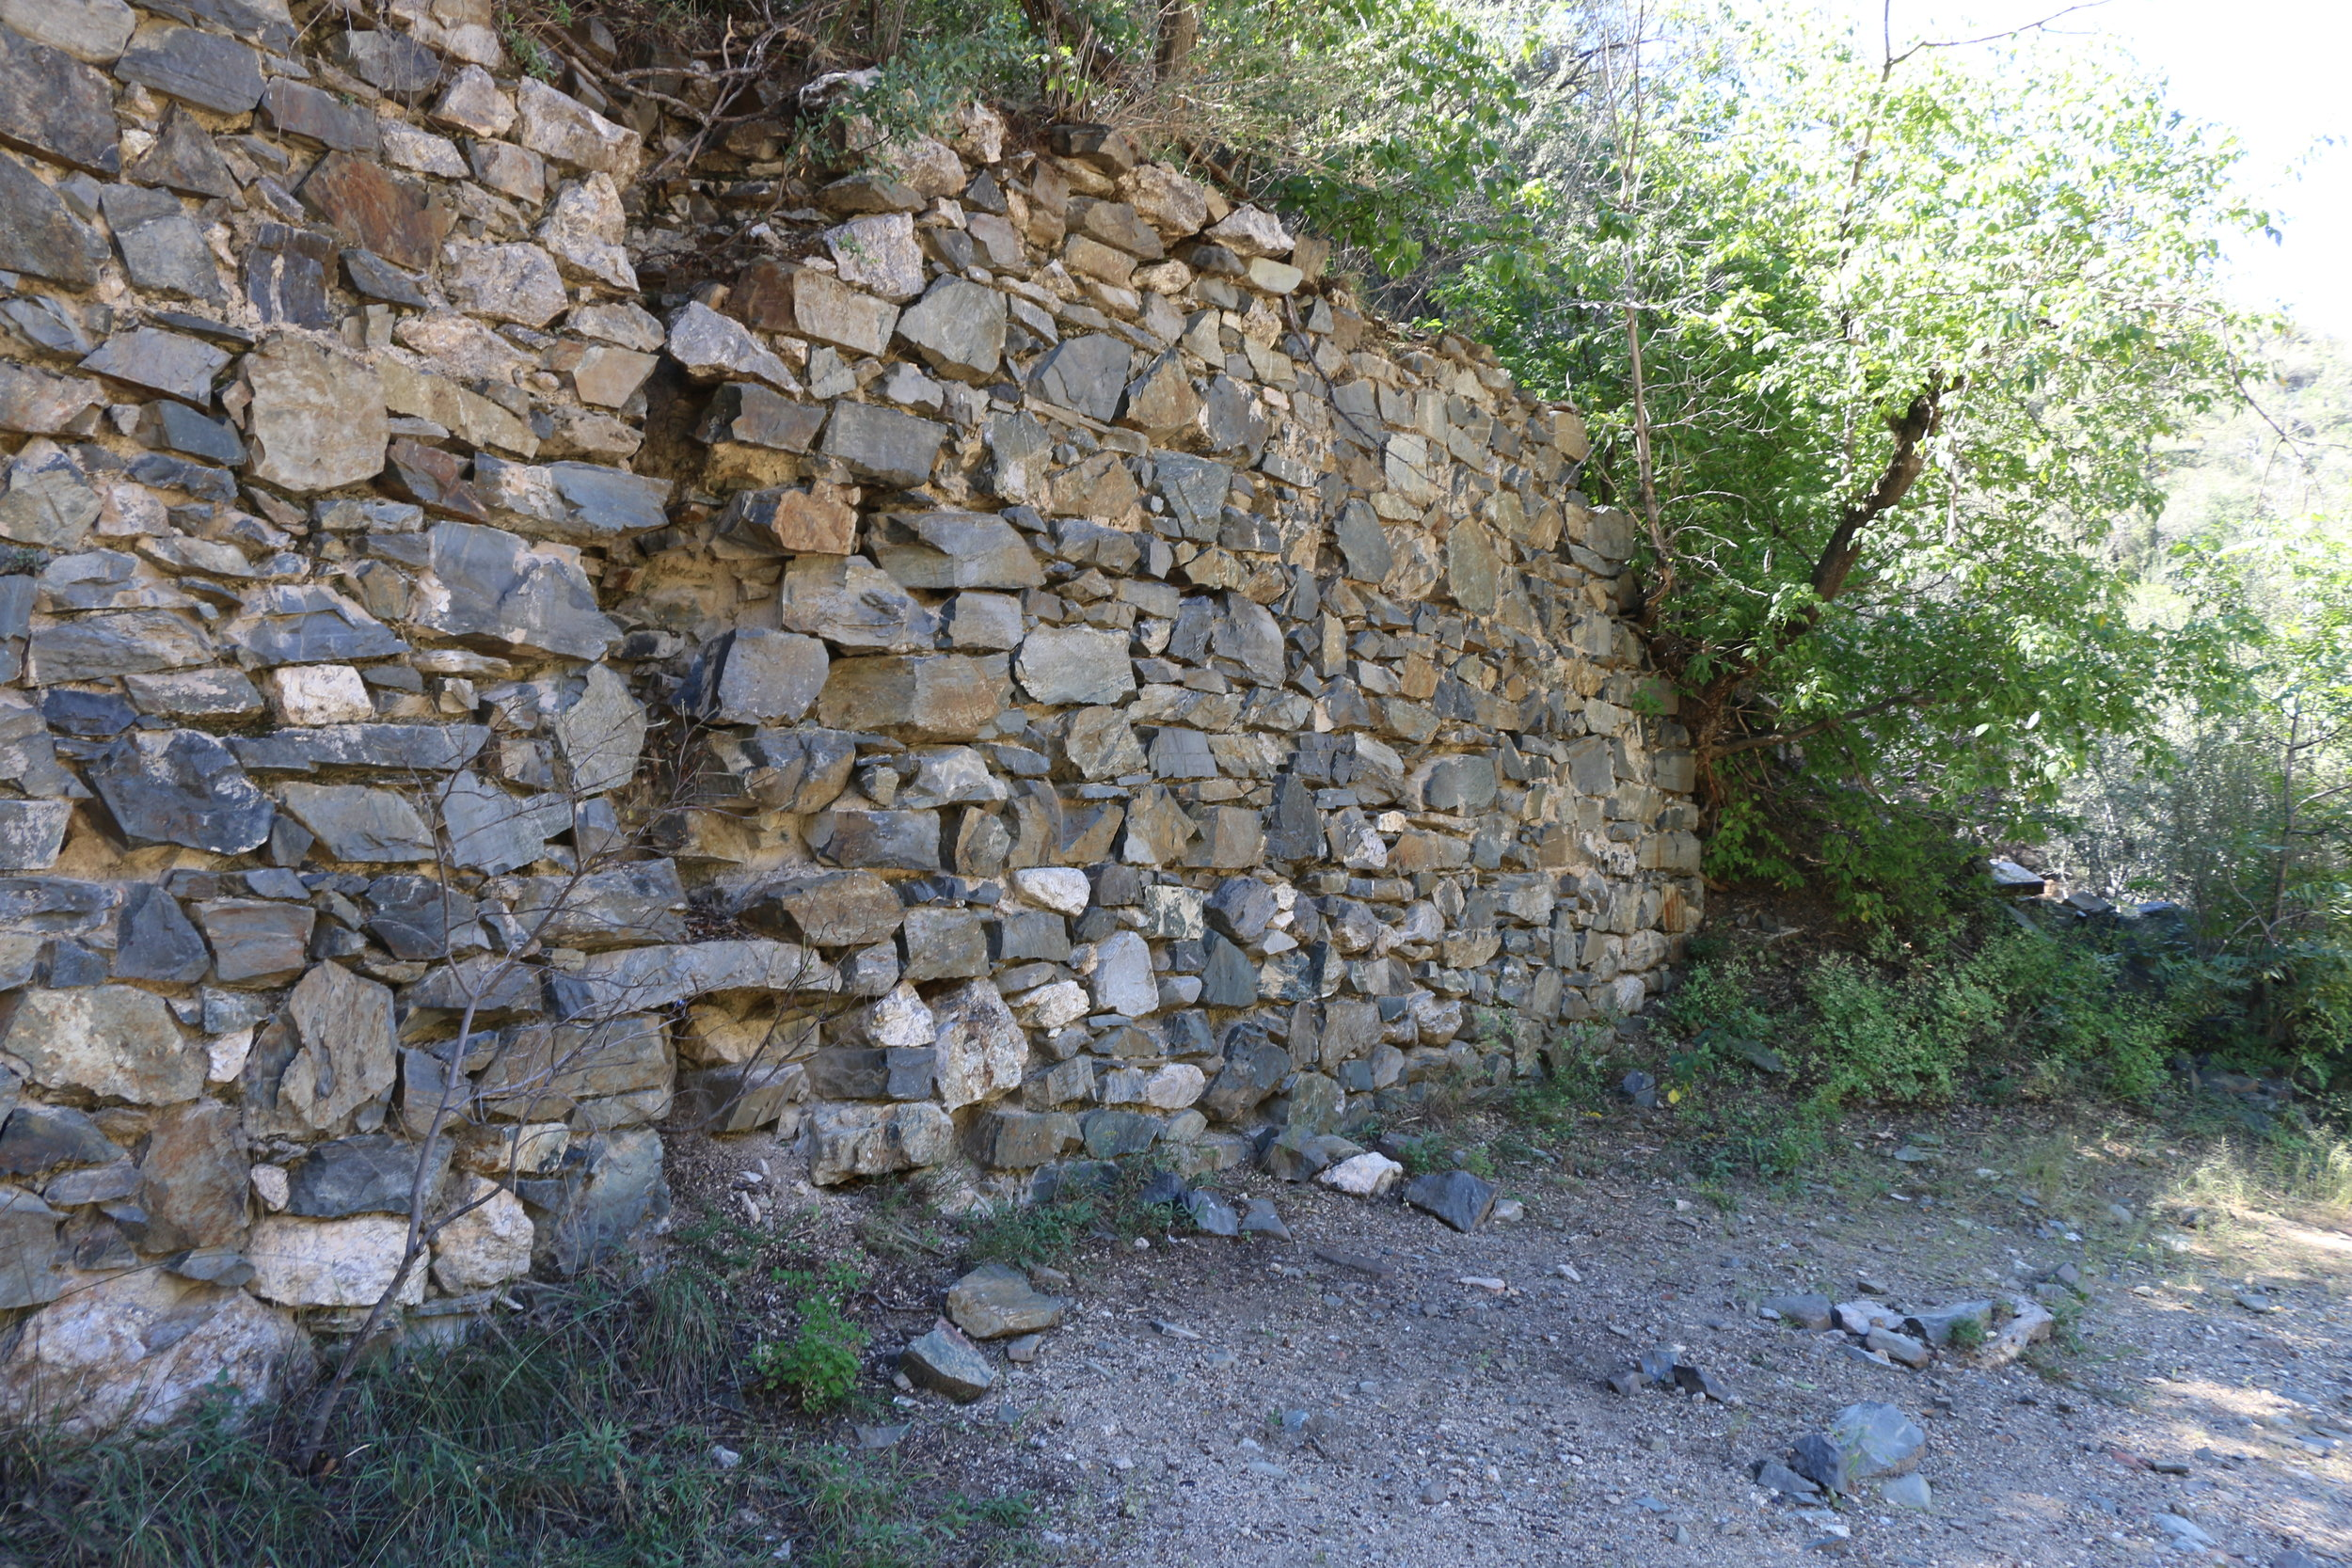 Only one wall remains of the boarding house. This is the most visible ruin from the road.